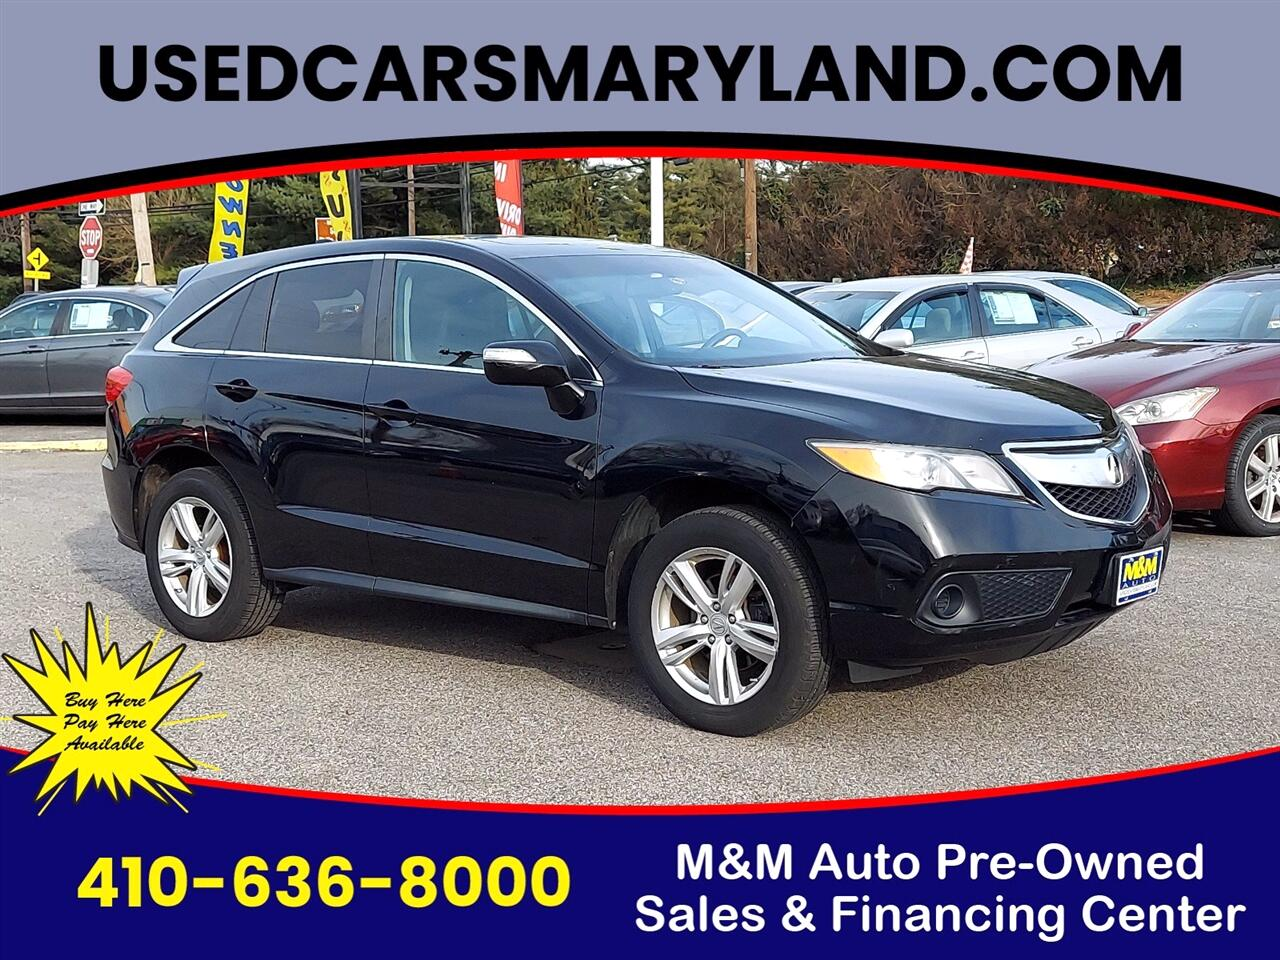 Used Acura Rdx Baltimore Md